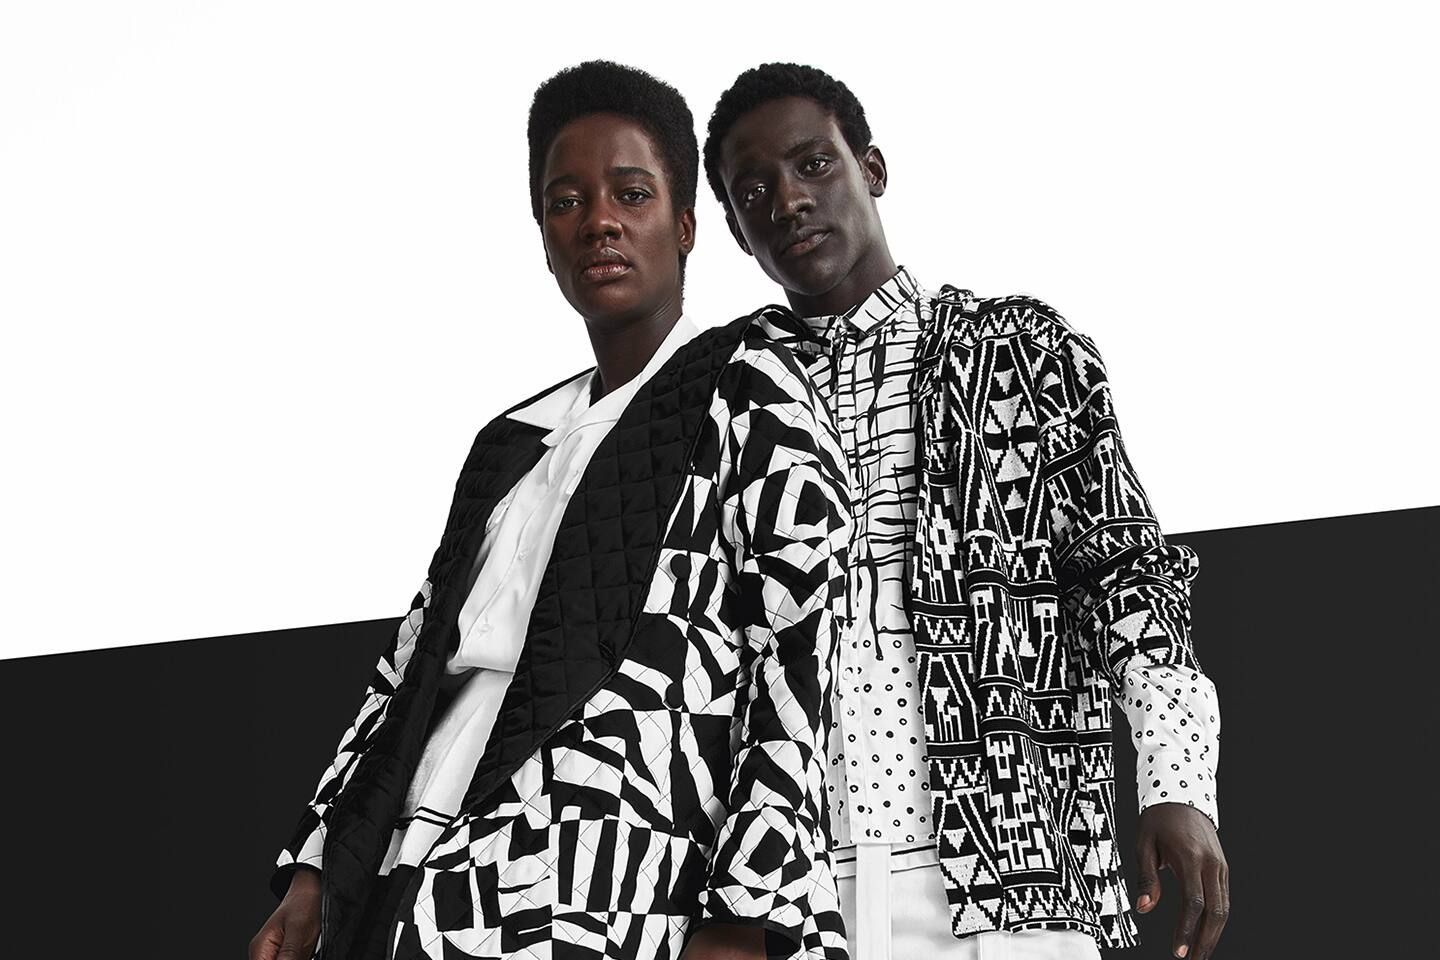 Two dark-skinned models and black and white geometric patterned jackets